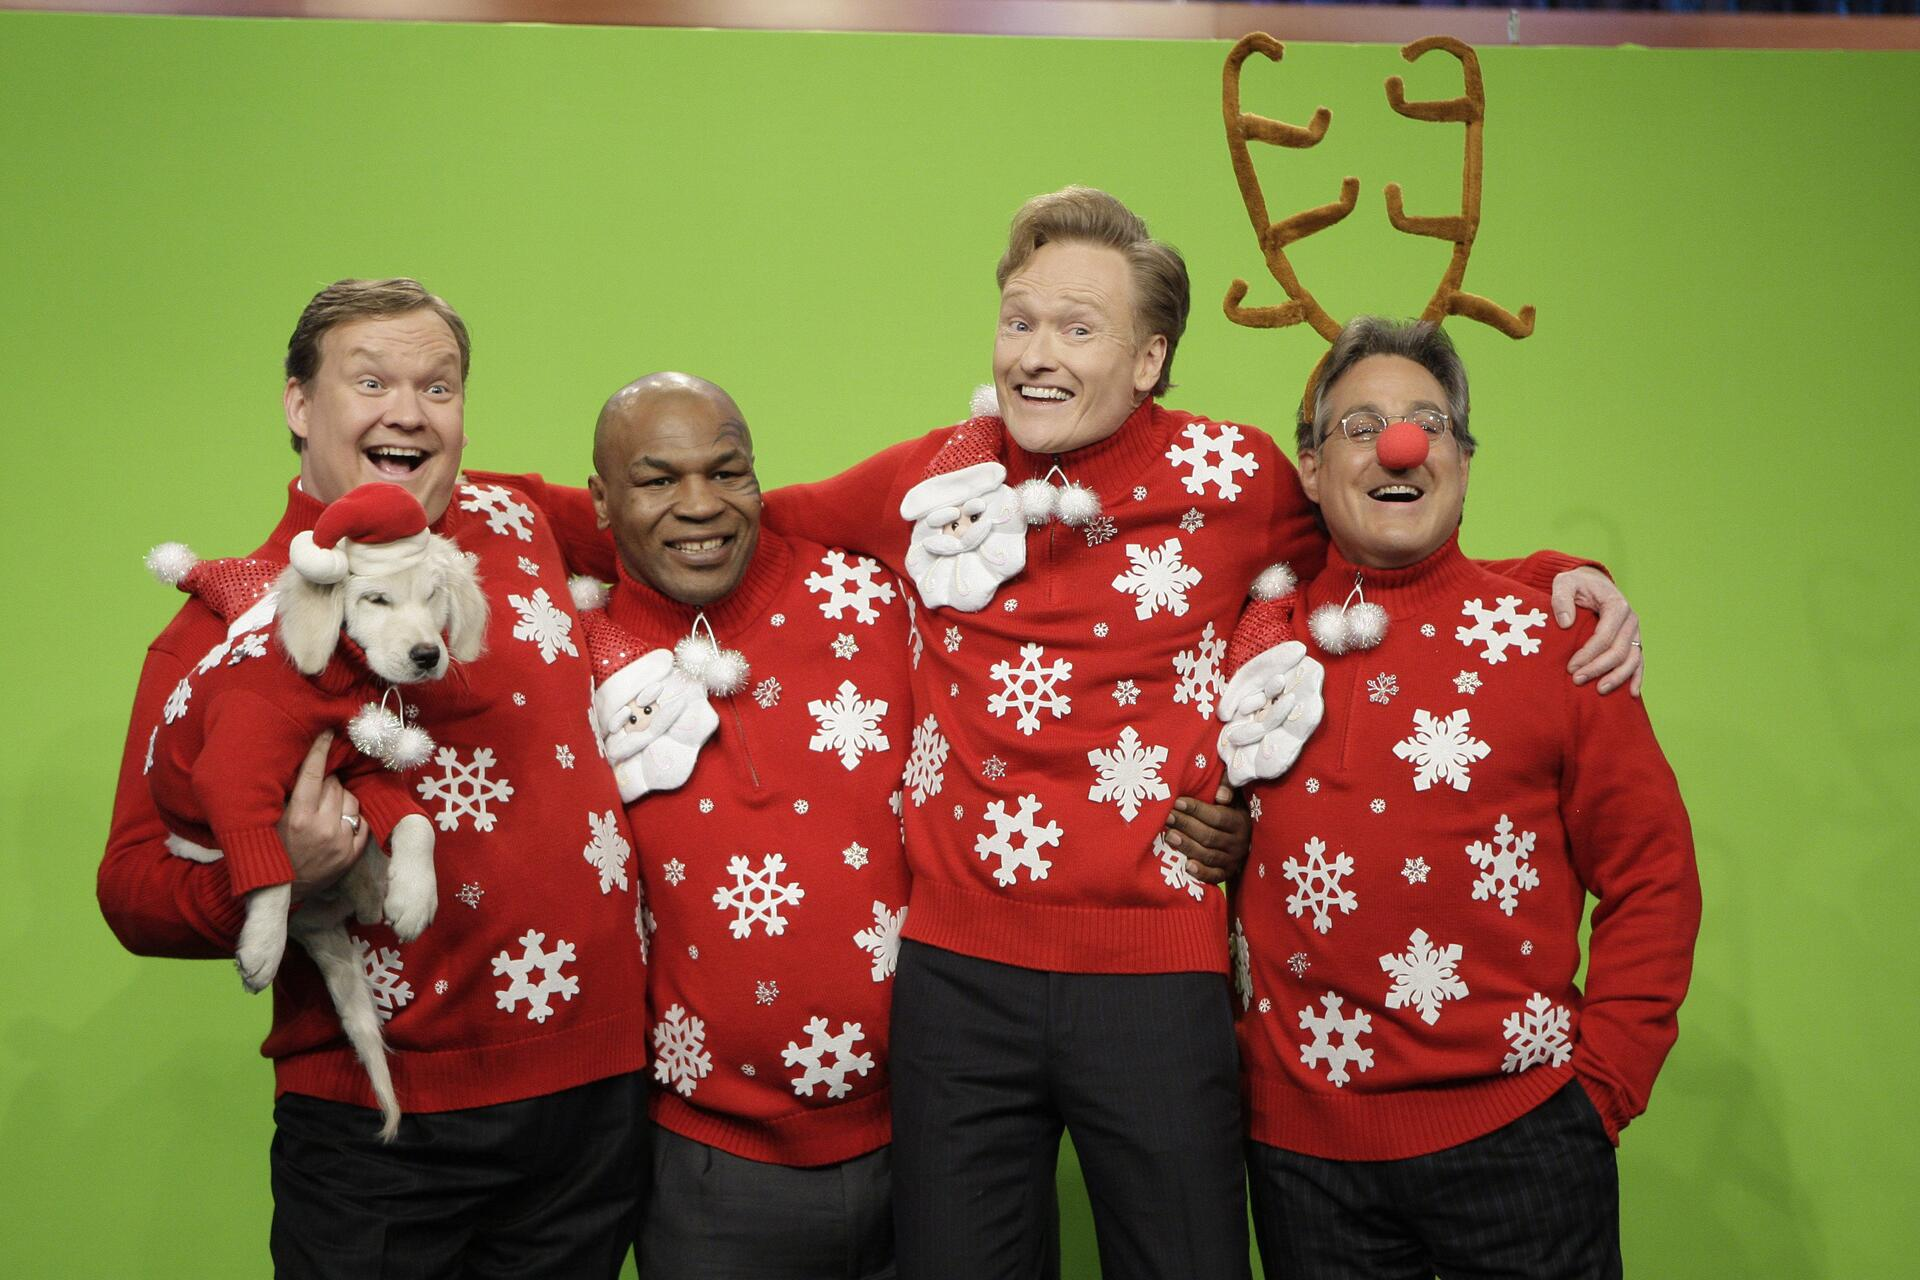 Bild zu Snuggles, Andy Richter, Mike Tyson, Conan O'Brien, Weihnachten, Ugly Sweater